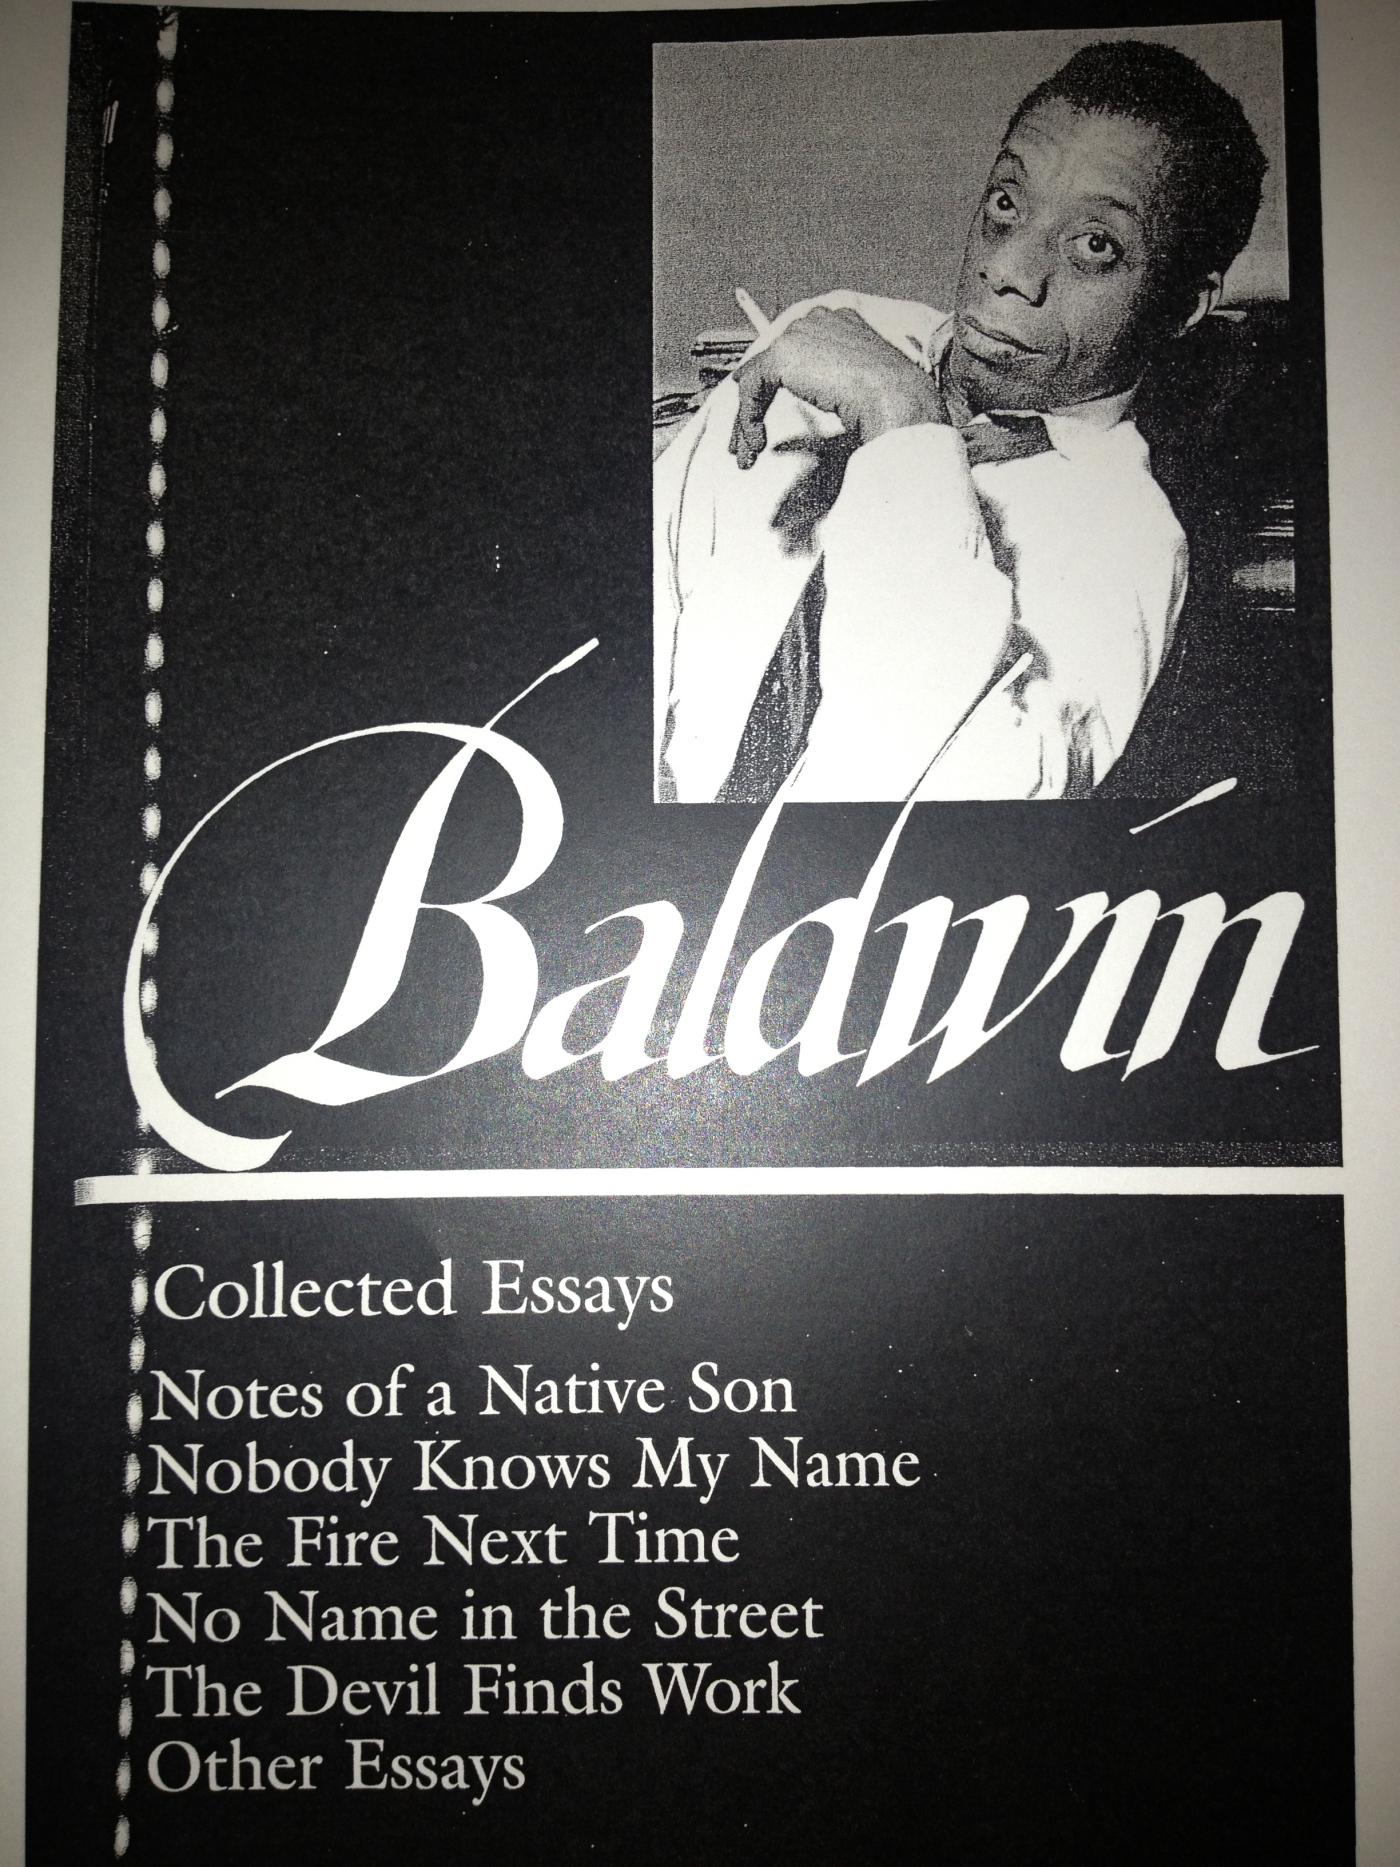 001 Img 4408w1400h9999 James Baldwin Collected Essays Essay Wondrous Table Of Contents Ebook Google Books Full